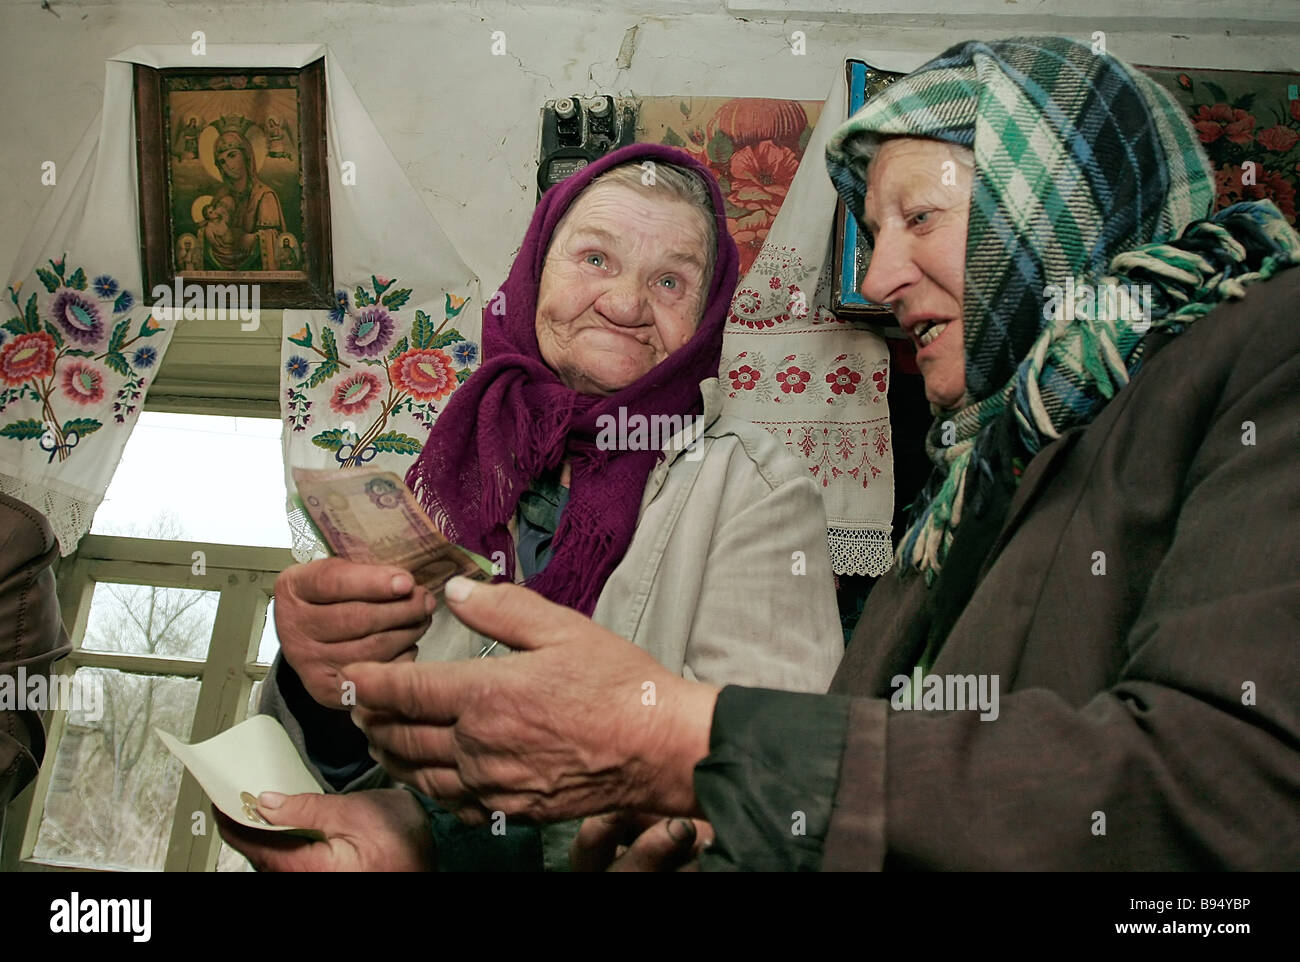 Rural dwellers in the village of Illintsy counting their pensions of 300 grivnas 60 and the Chernobyl extra hazard - Stock Image